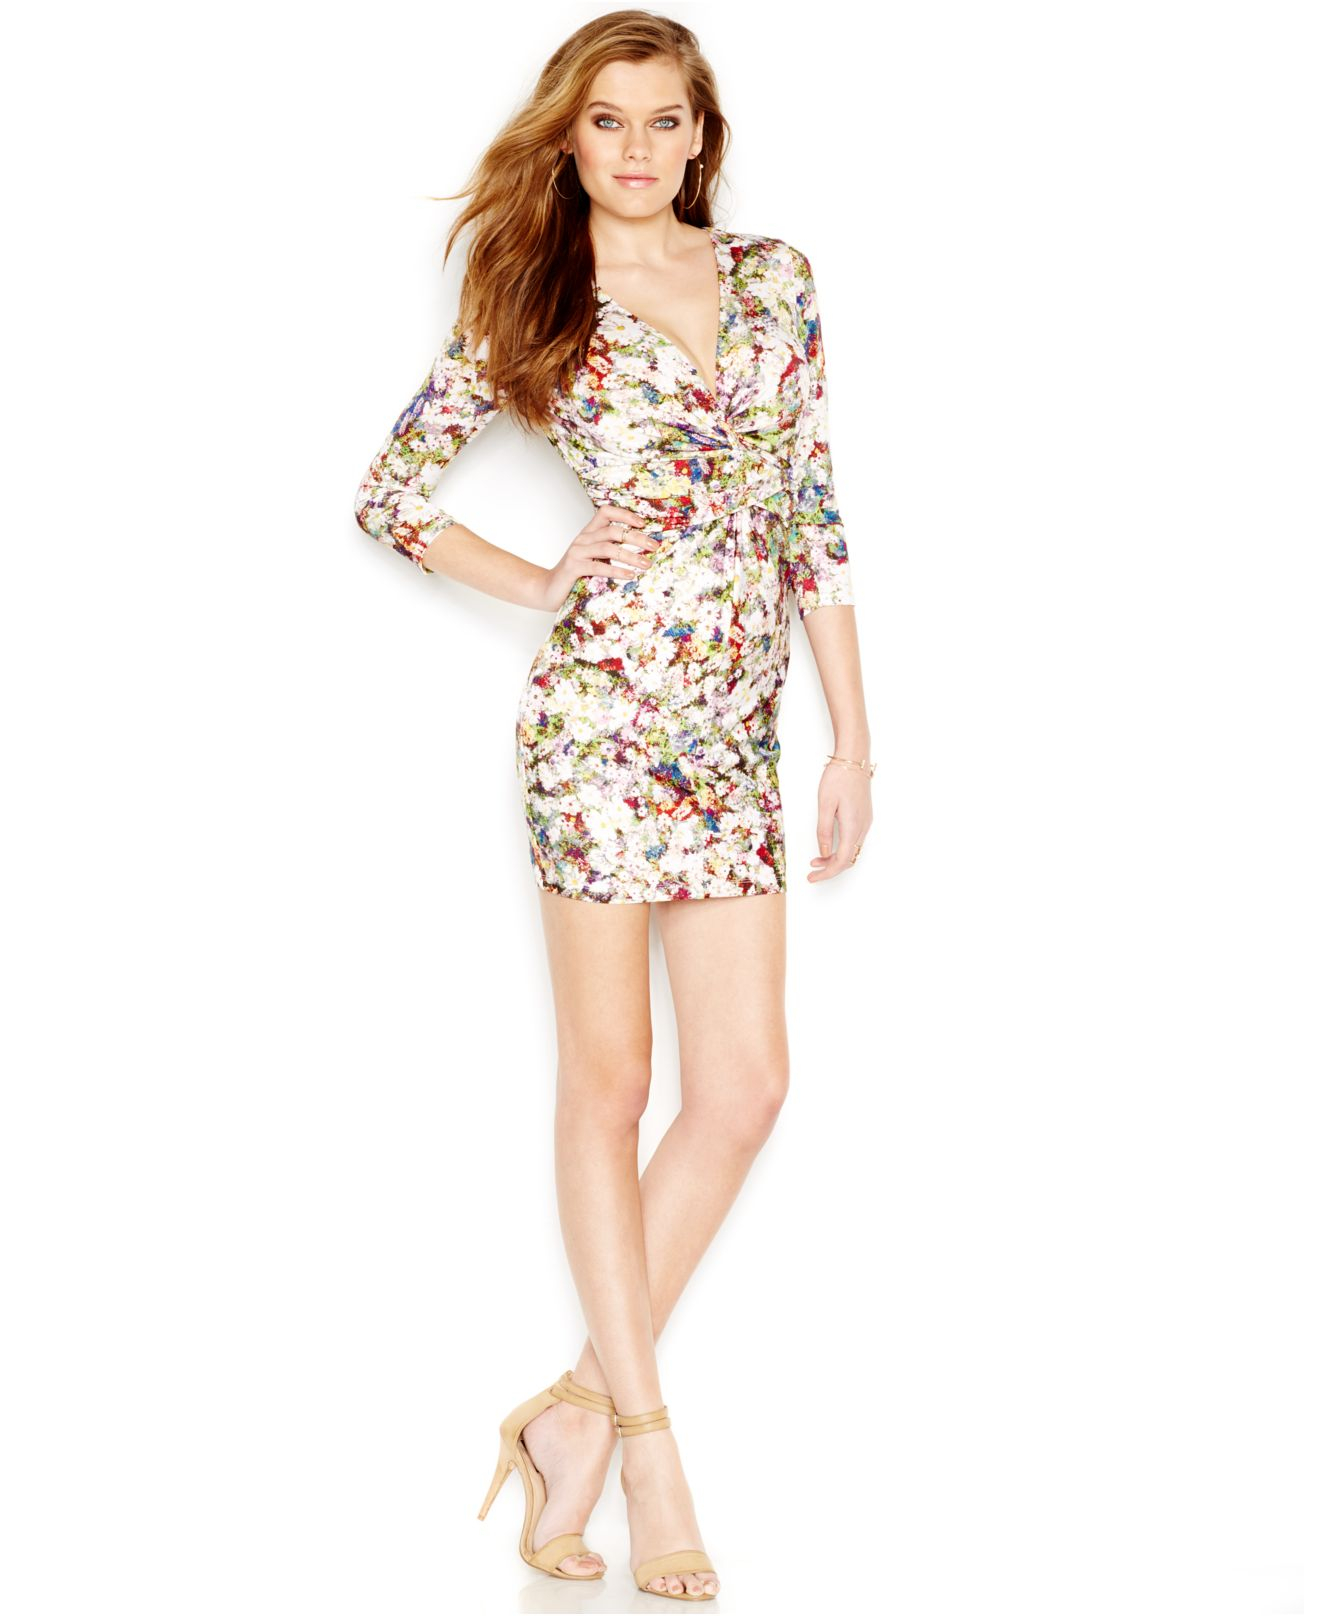 Guess floral dress macys for Guess dresses for wedding